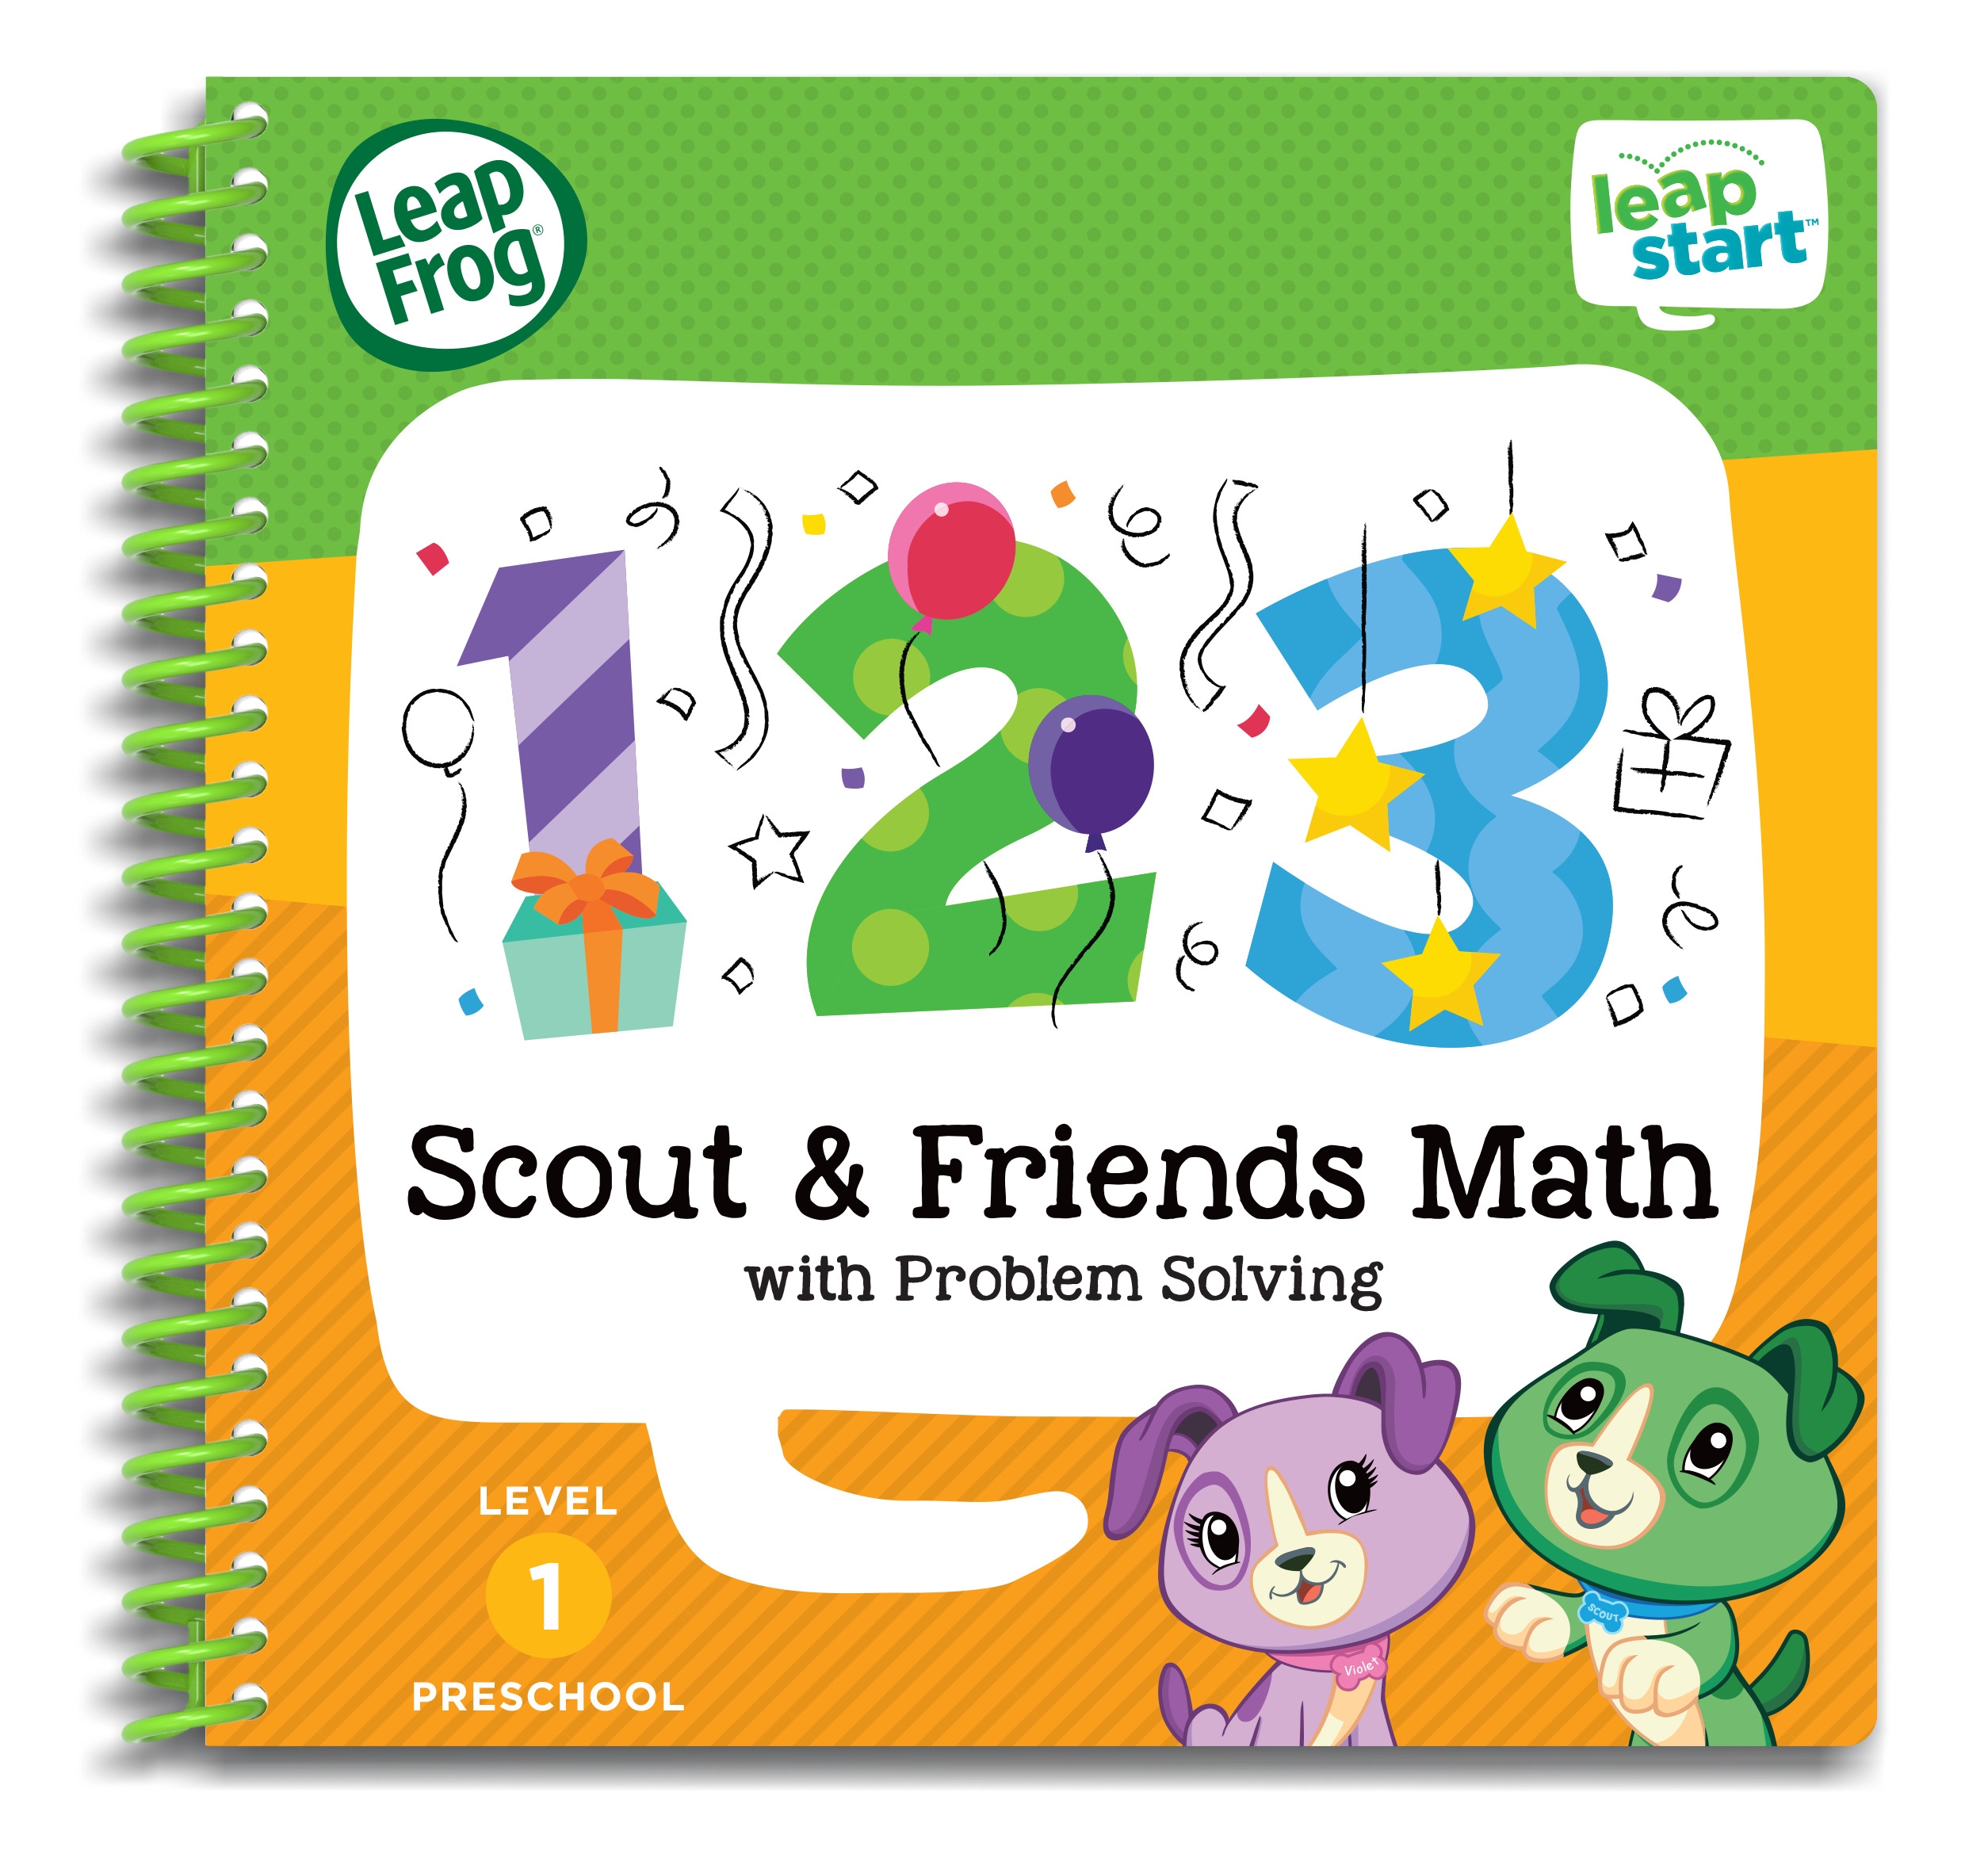 LeapFrog® LeapStart™ Preschool Math Activity Book